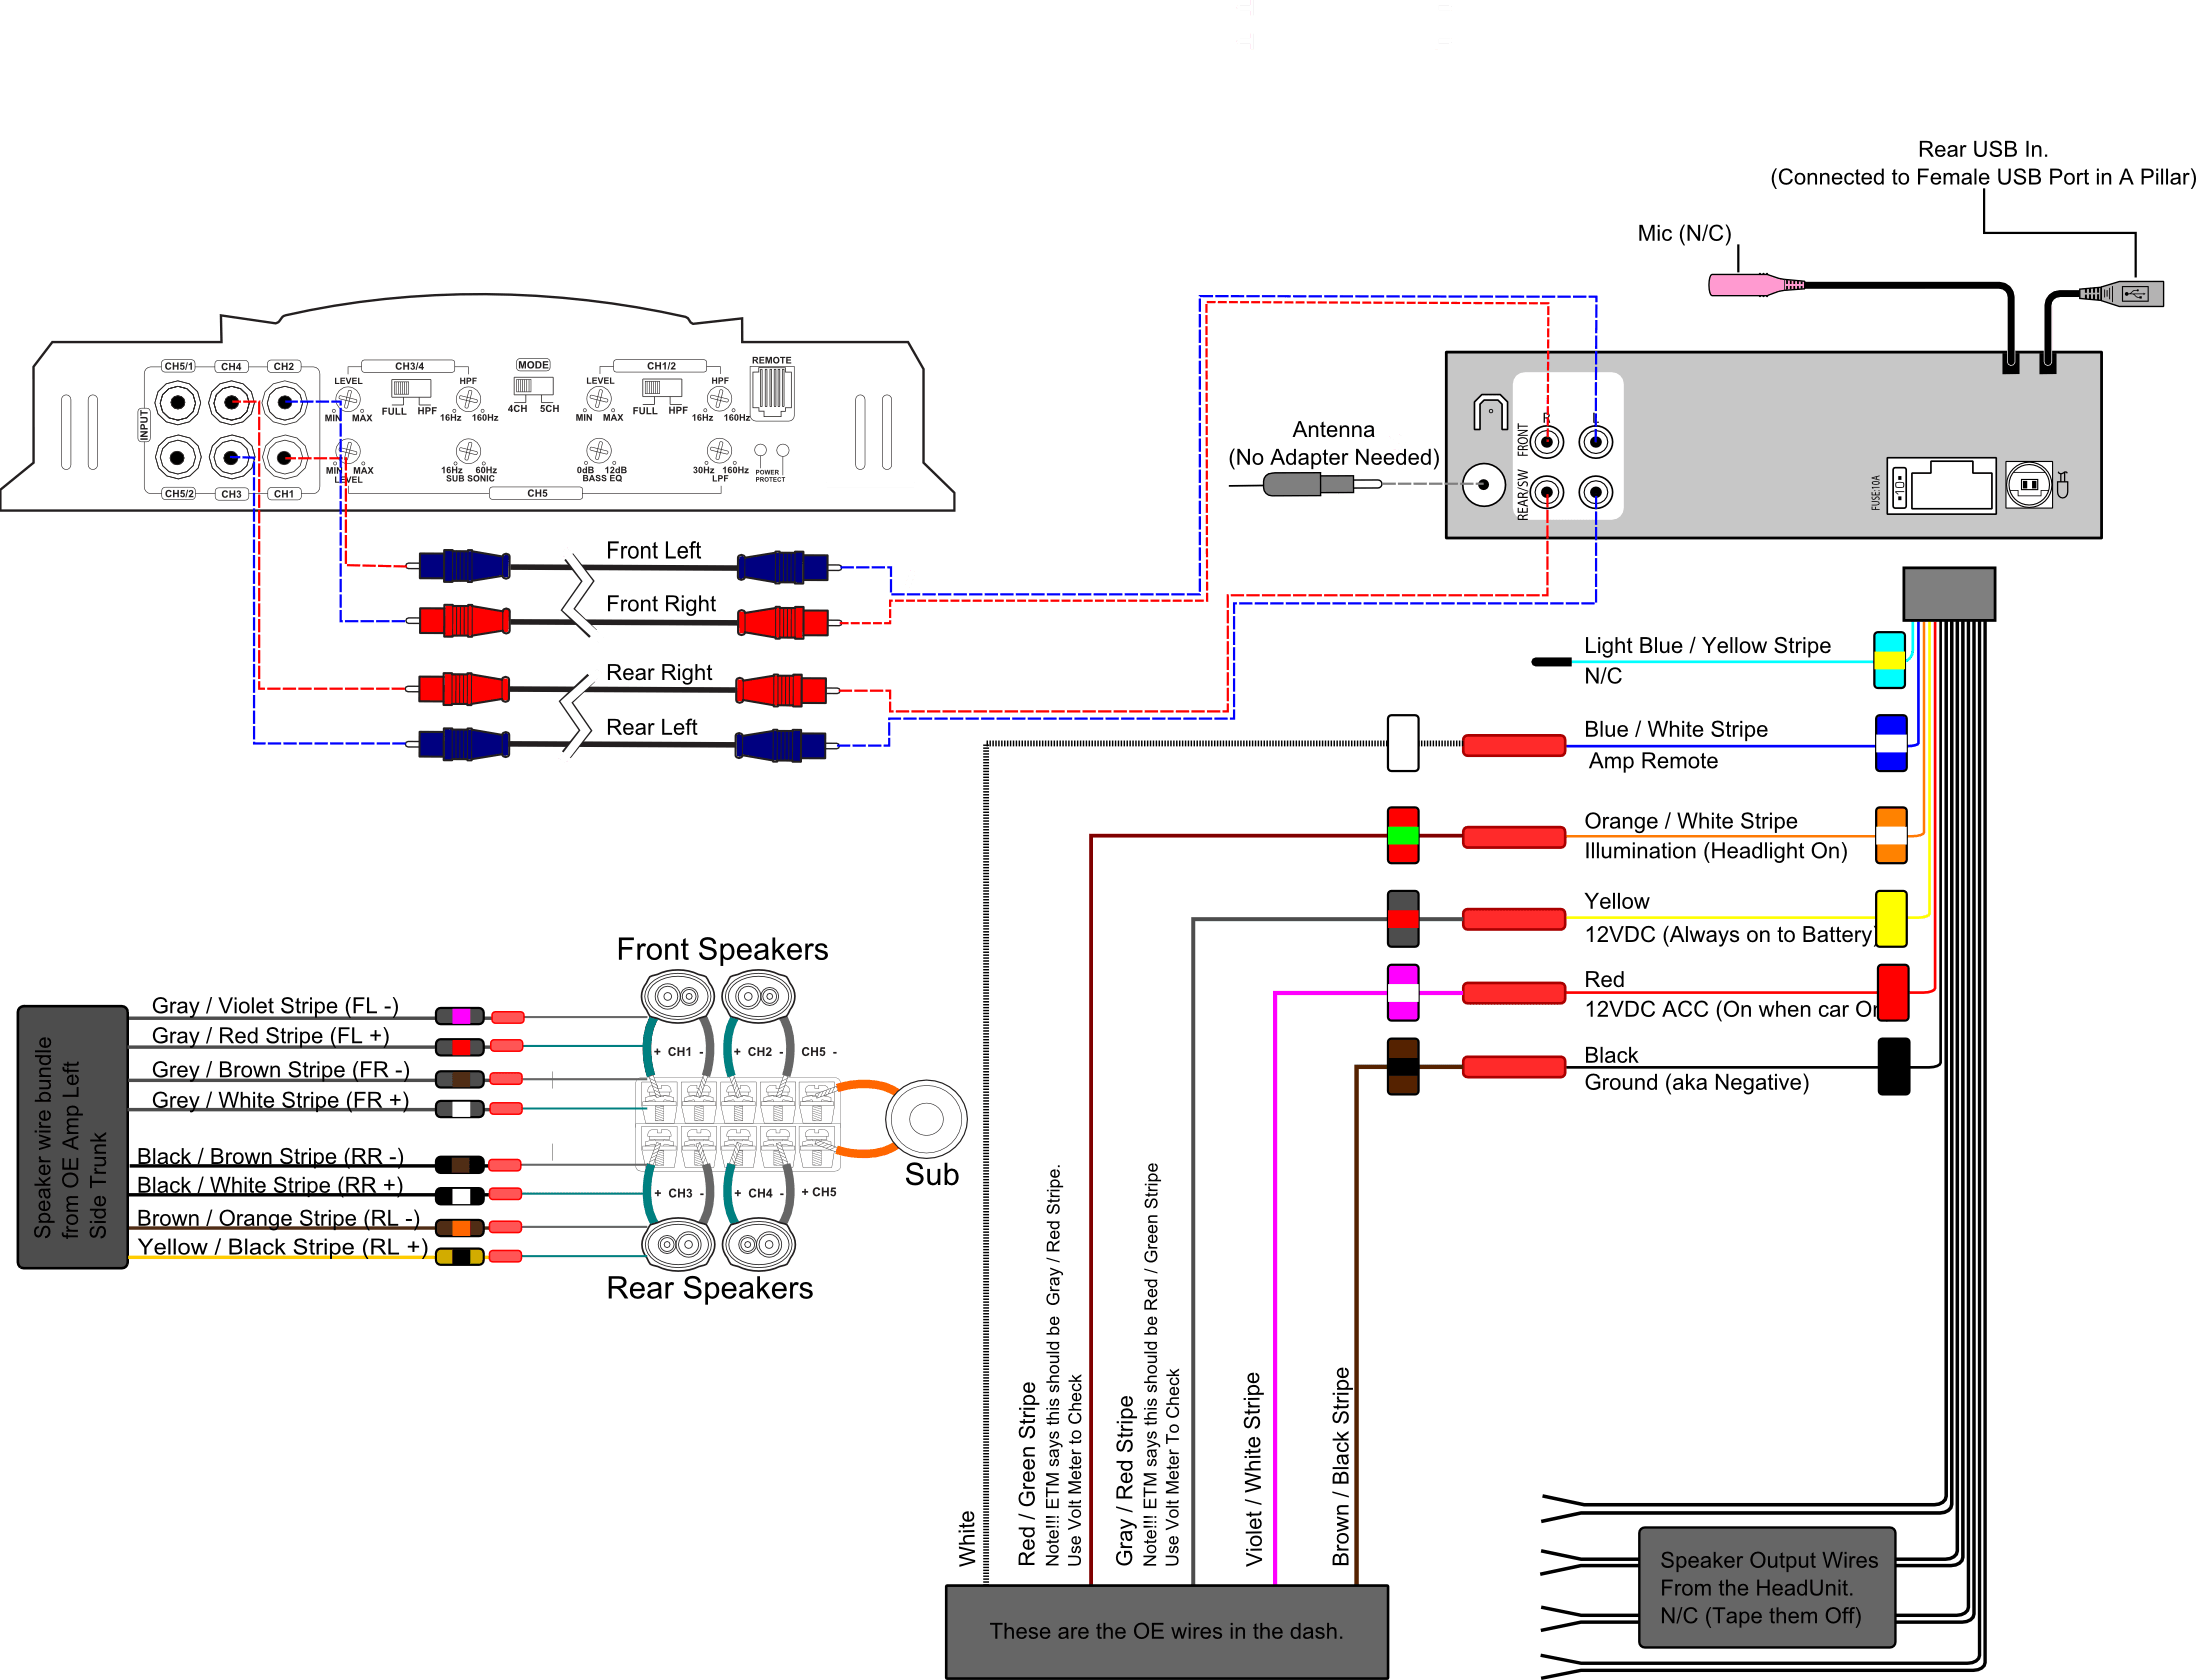 New Wiring Diagram For Dual Car Stereo Diagram Diagramtemplate Diagramsample Car Stereo Installation Car Stereo Electrical Wiring Diagram